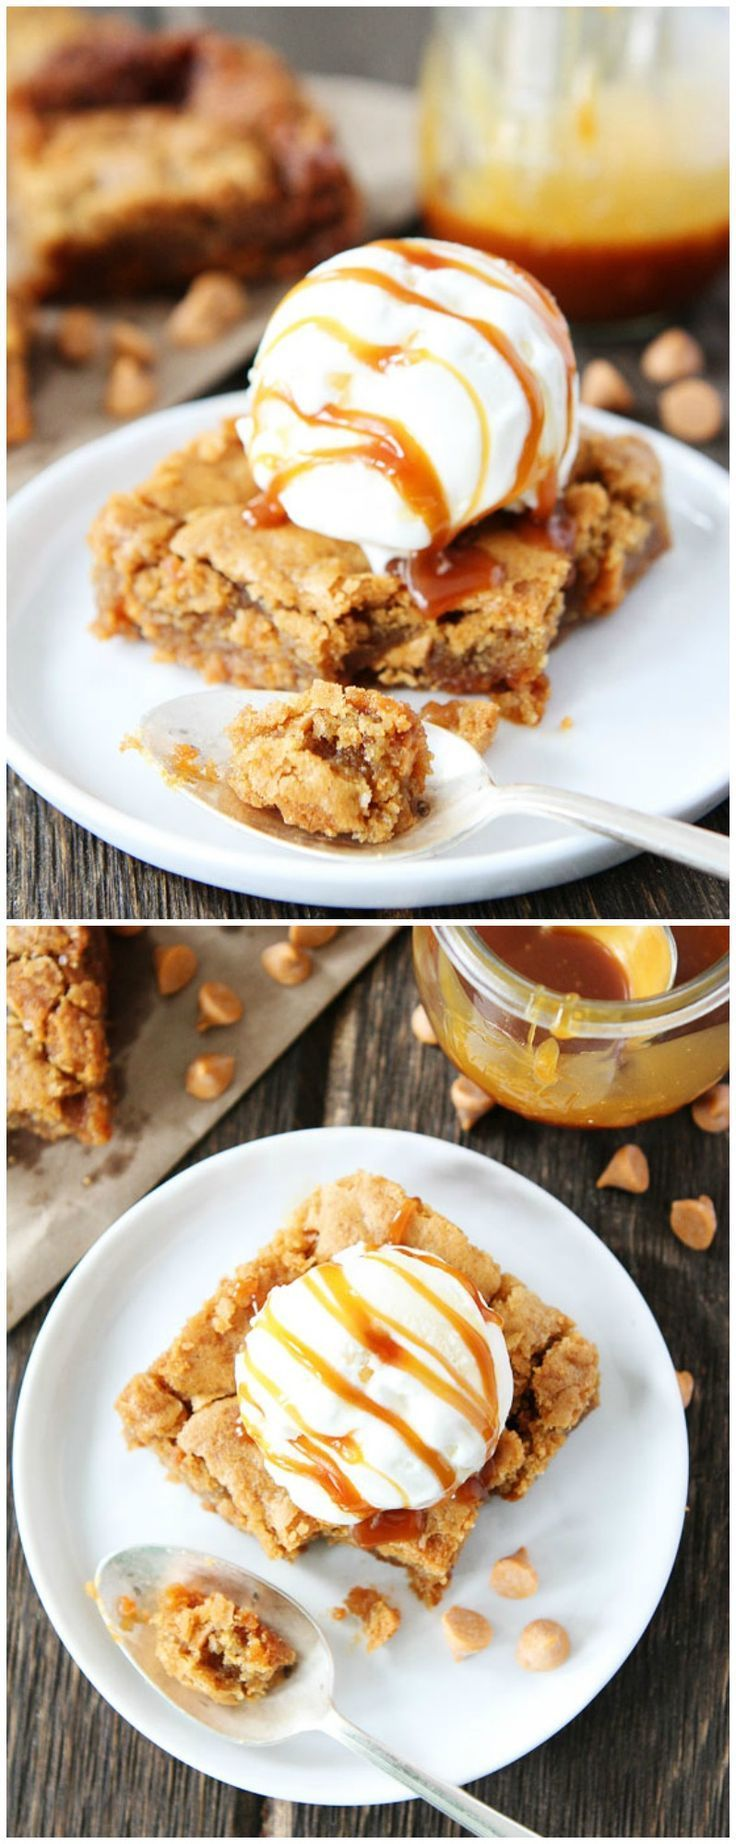 Salted Caramel Butterscotch Blondie Recipe on twopeasandtheirpod.com Chewy blondies with butterscotch chips and salted caramel sauce. This easy blondie recipe is perfect for parties, potlucks, or every day dessert!